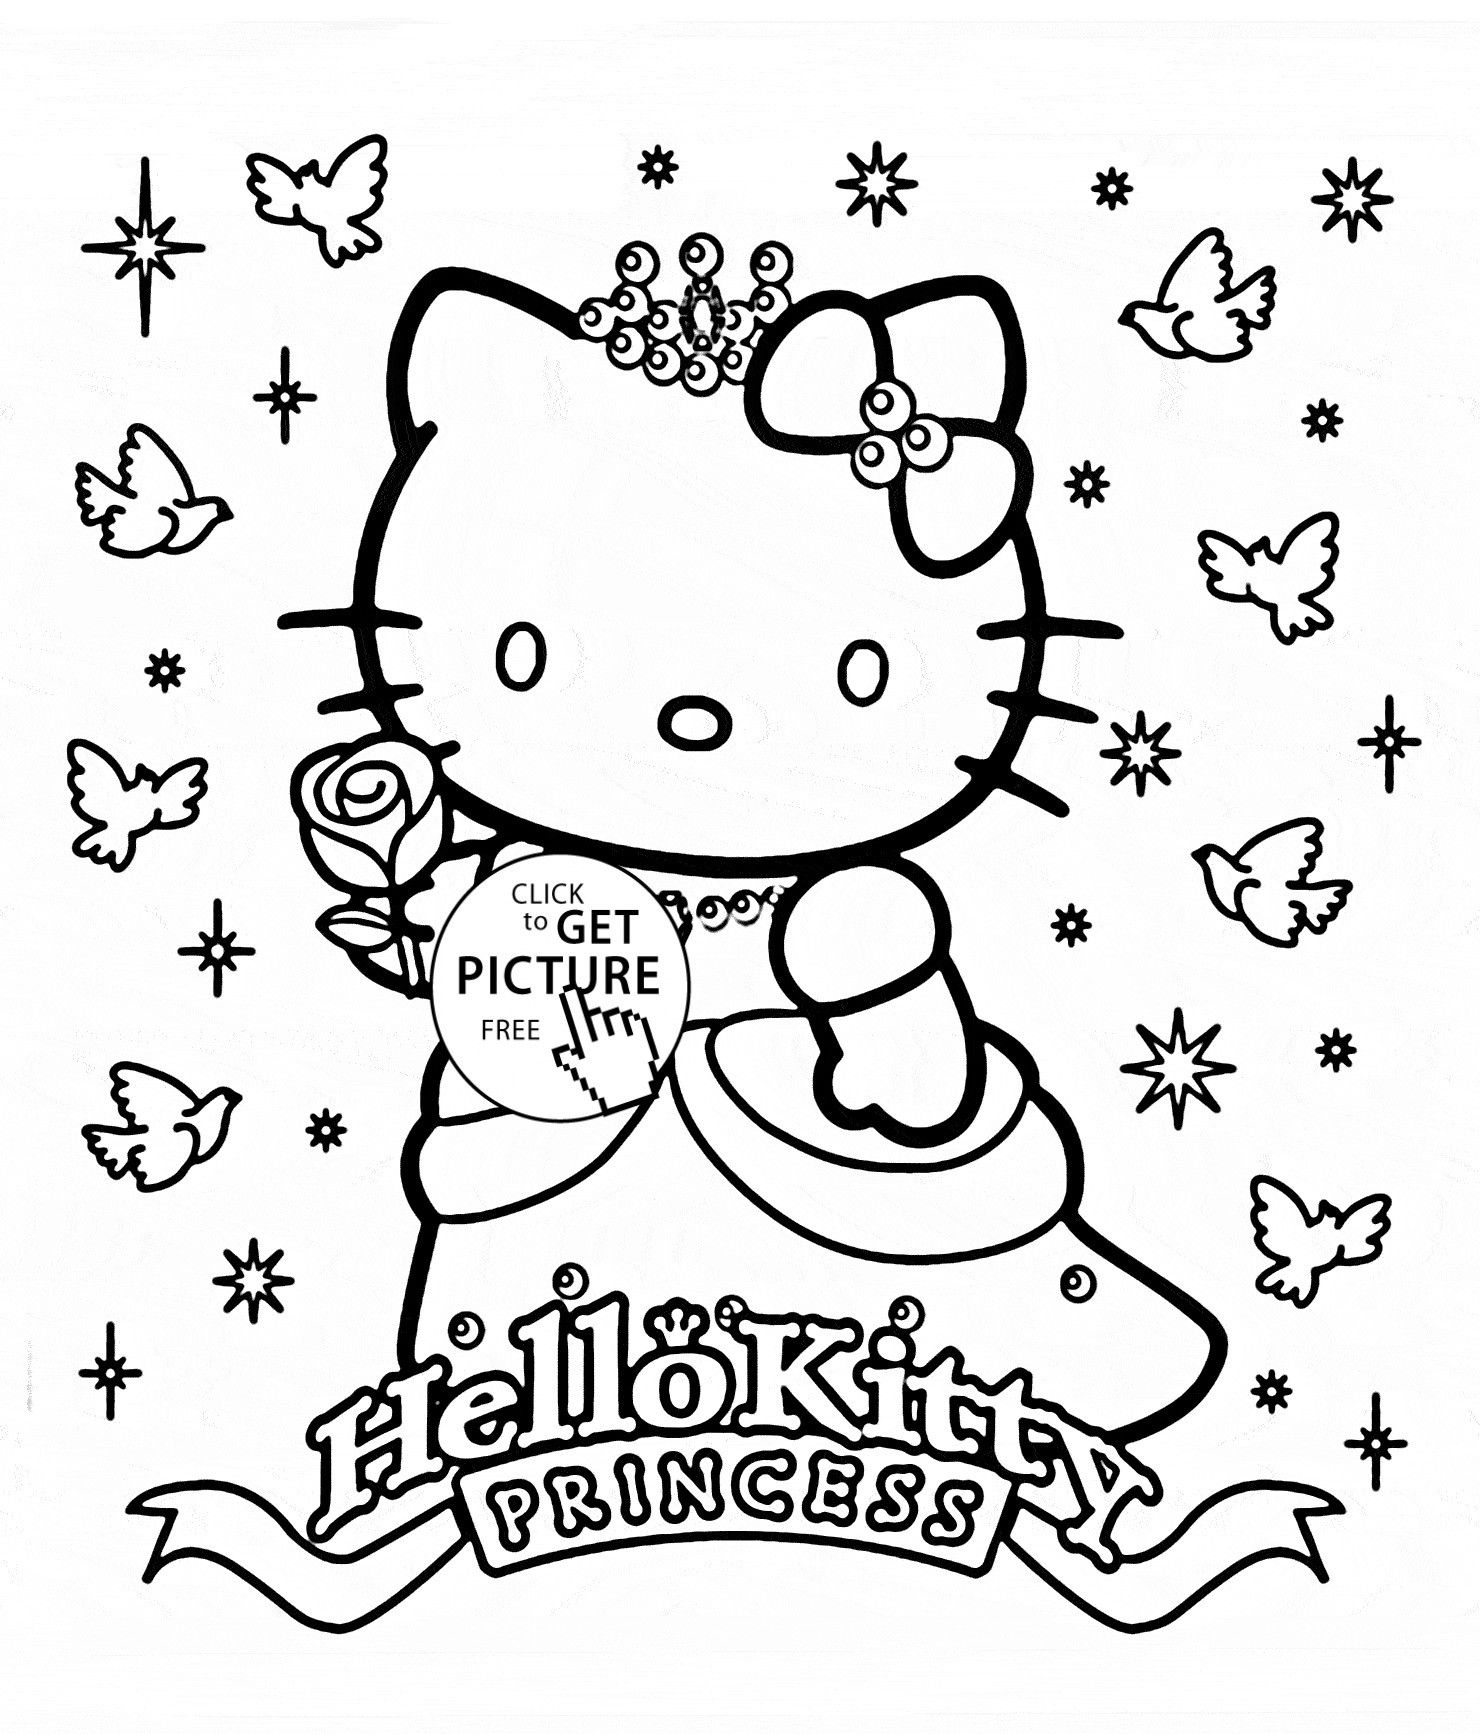 Hello kitty princess coloring pages through the thousand images on line concerning hello kitty princess coloring pages choices the very best series